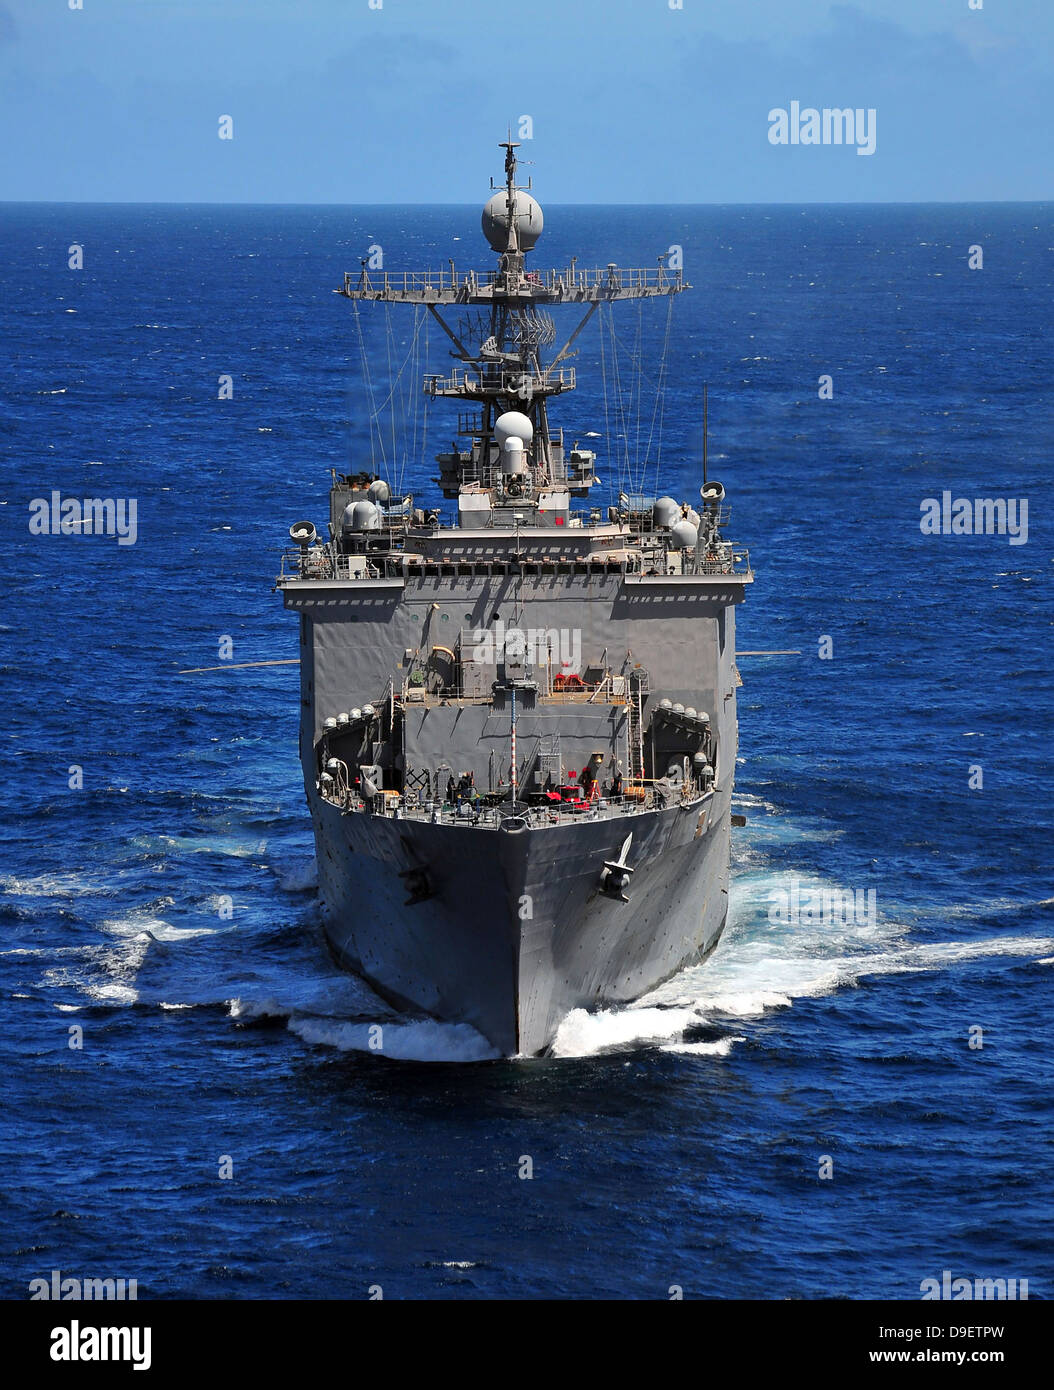 USS Comstock transits the Indian Ocean - Stock Image